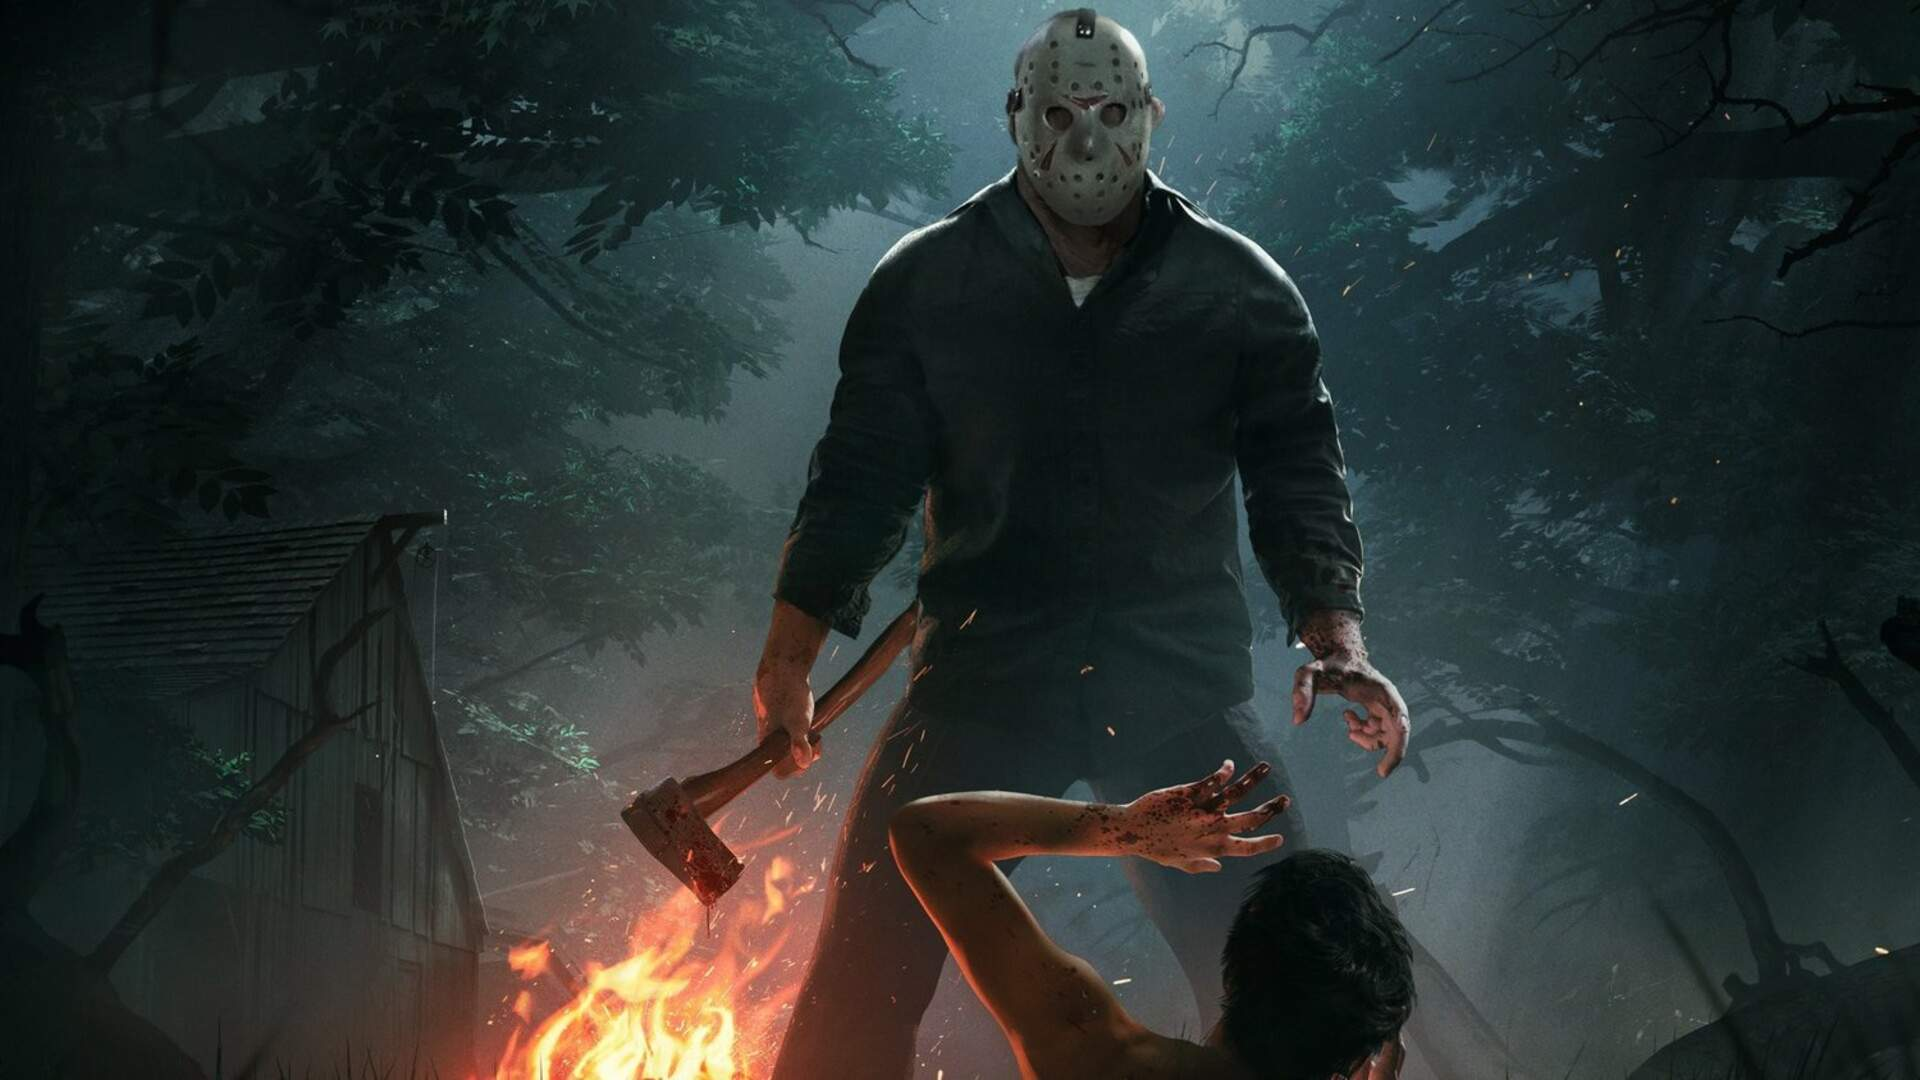 Cult Favorite Multiplayer Horror Game, Friday the 13th, is Making Its Way to Switch